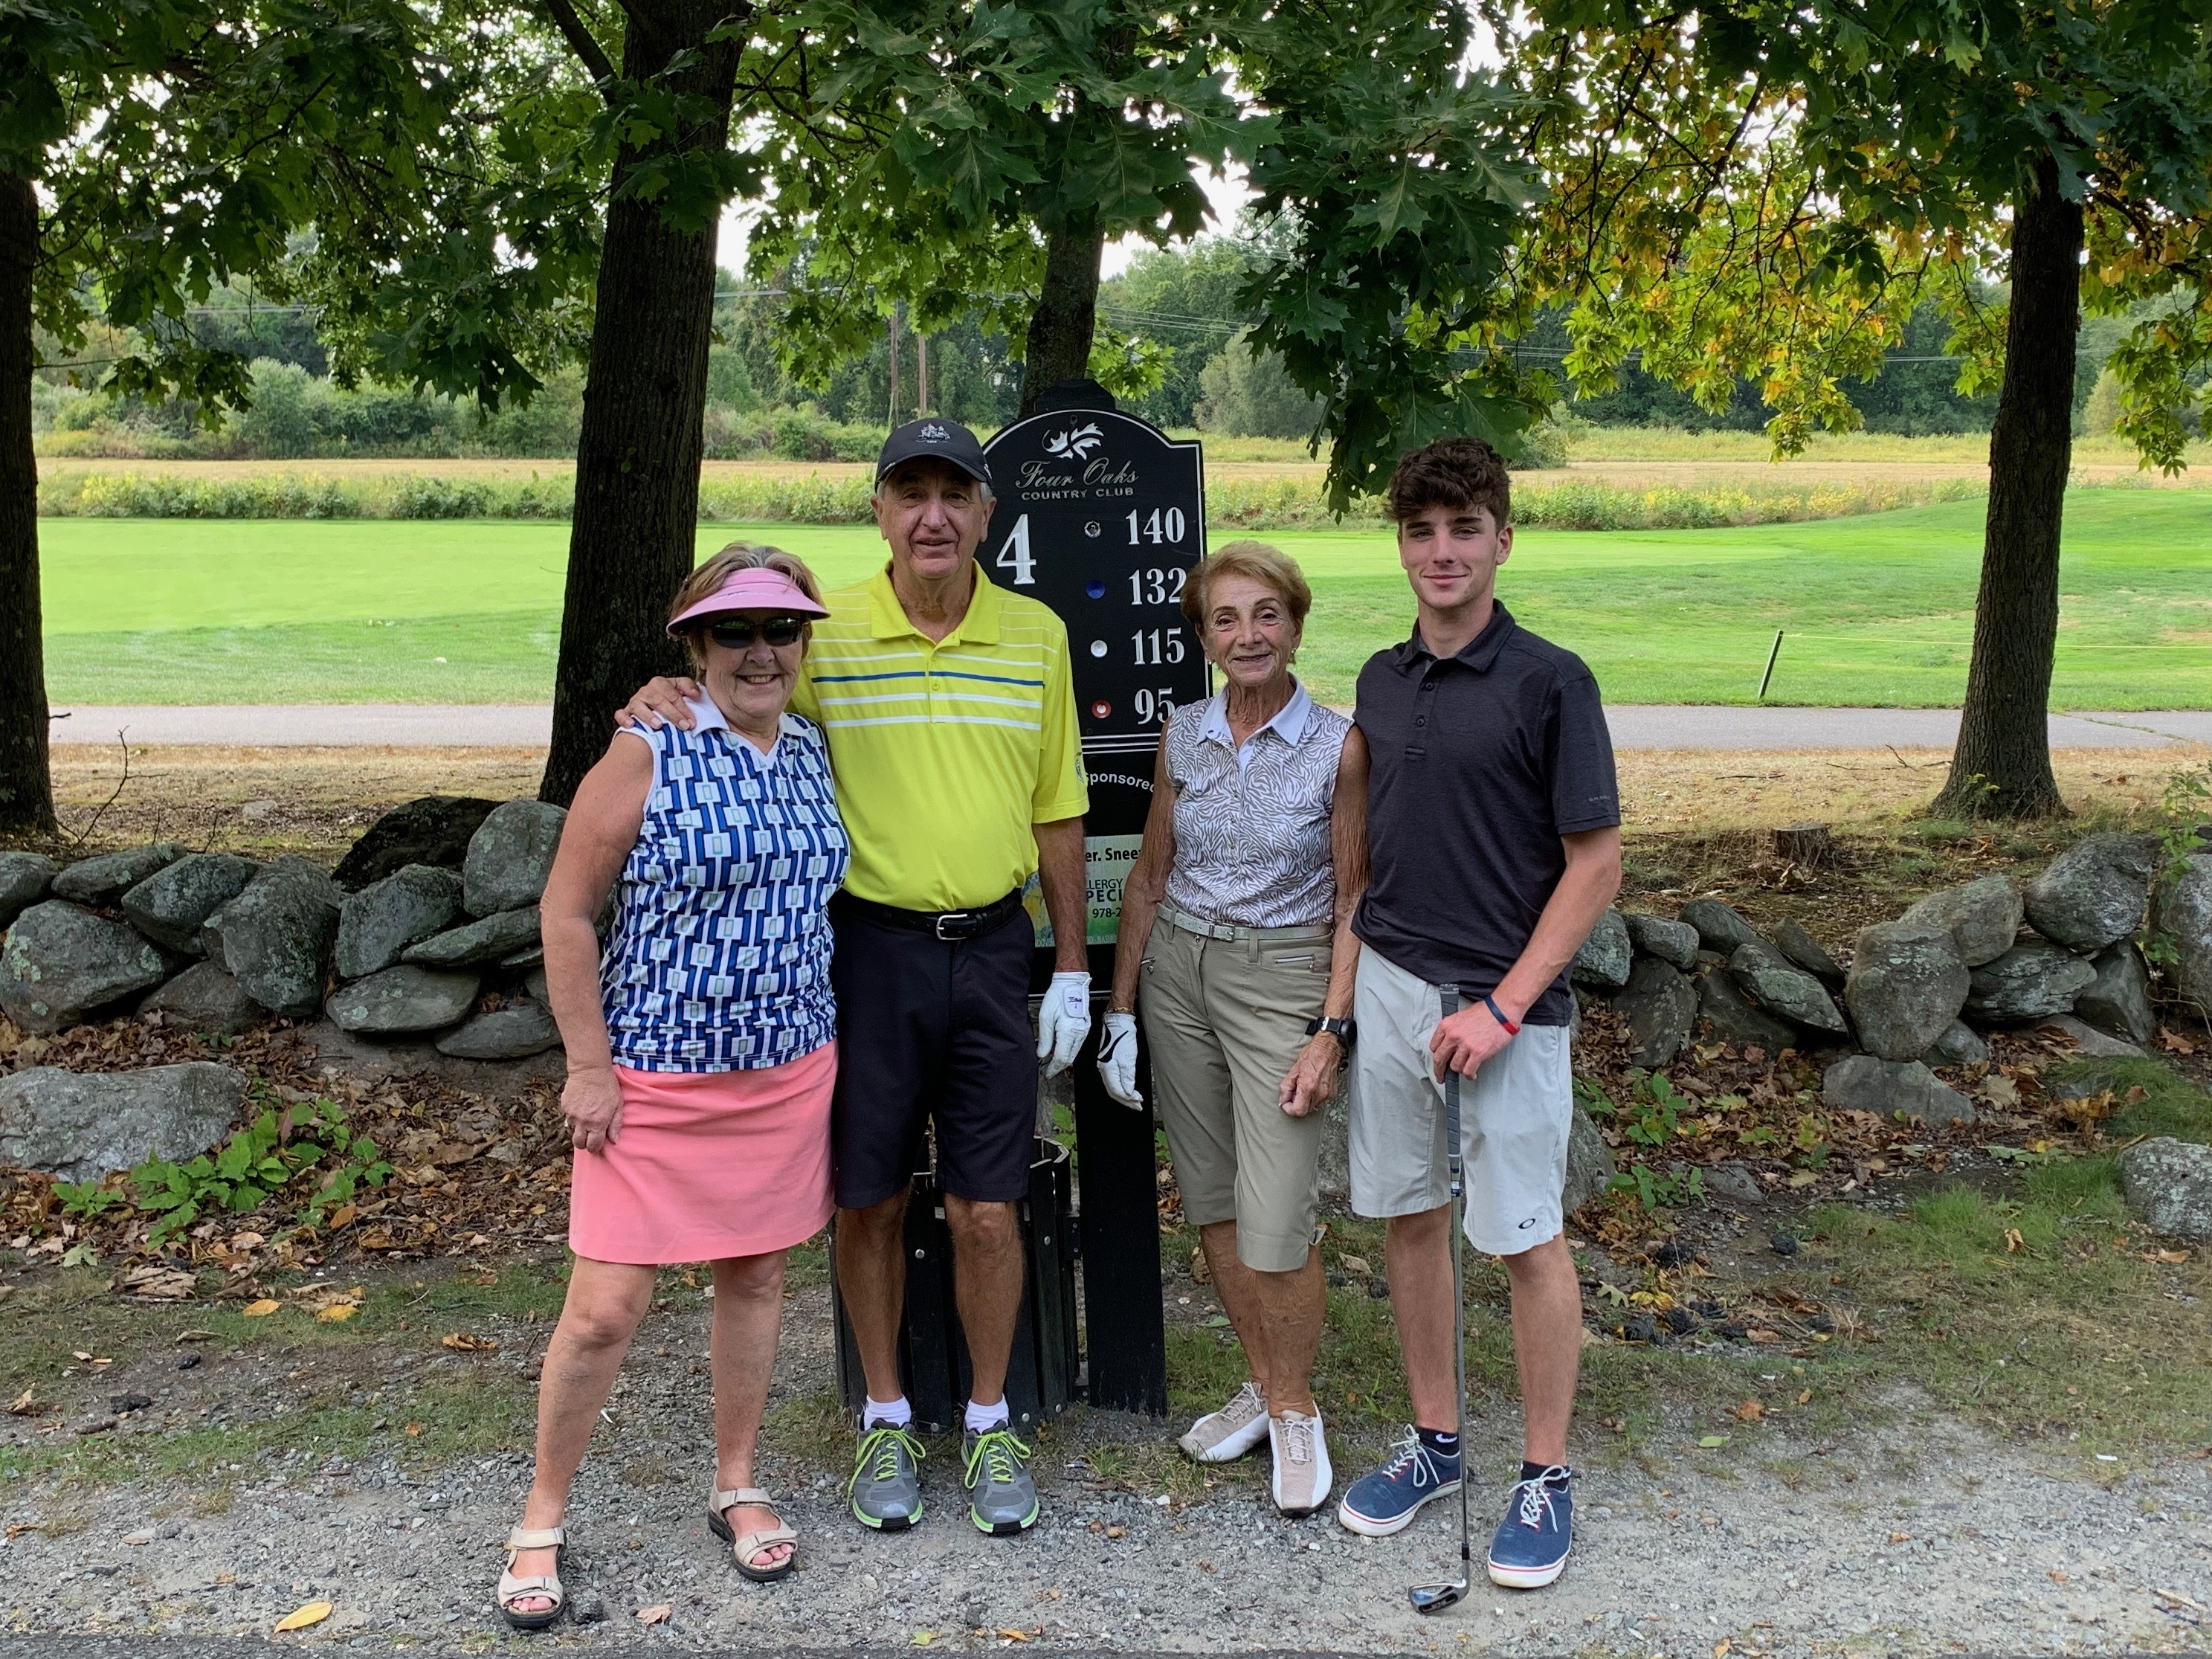 THE 28TH ANNUAL CATALDO SWING FORE HOPE GOLF TOURNAMENT gallery image #1